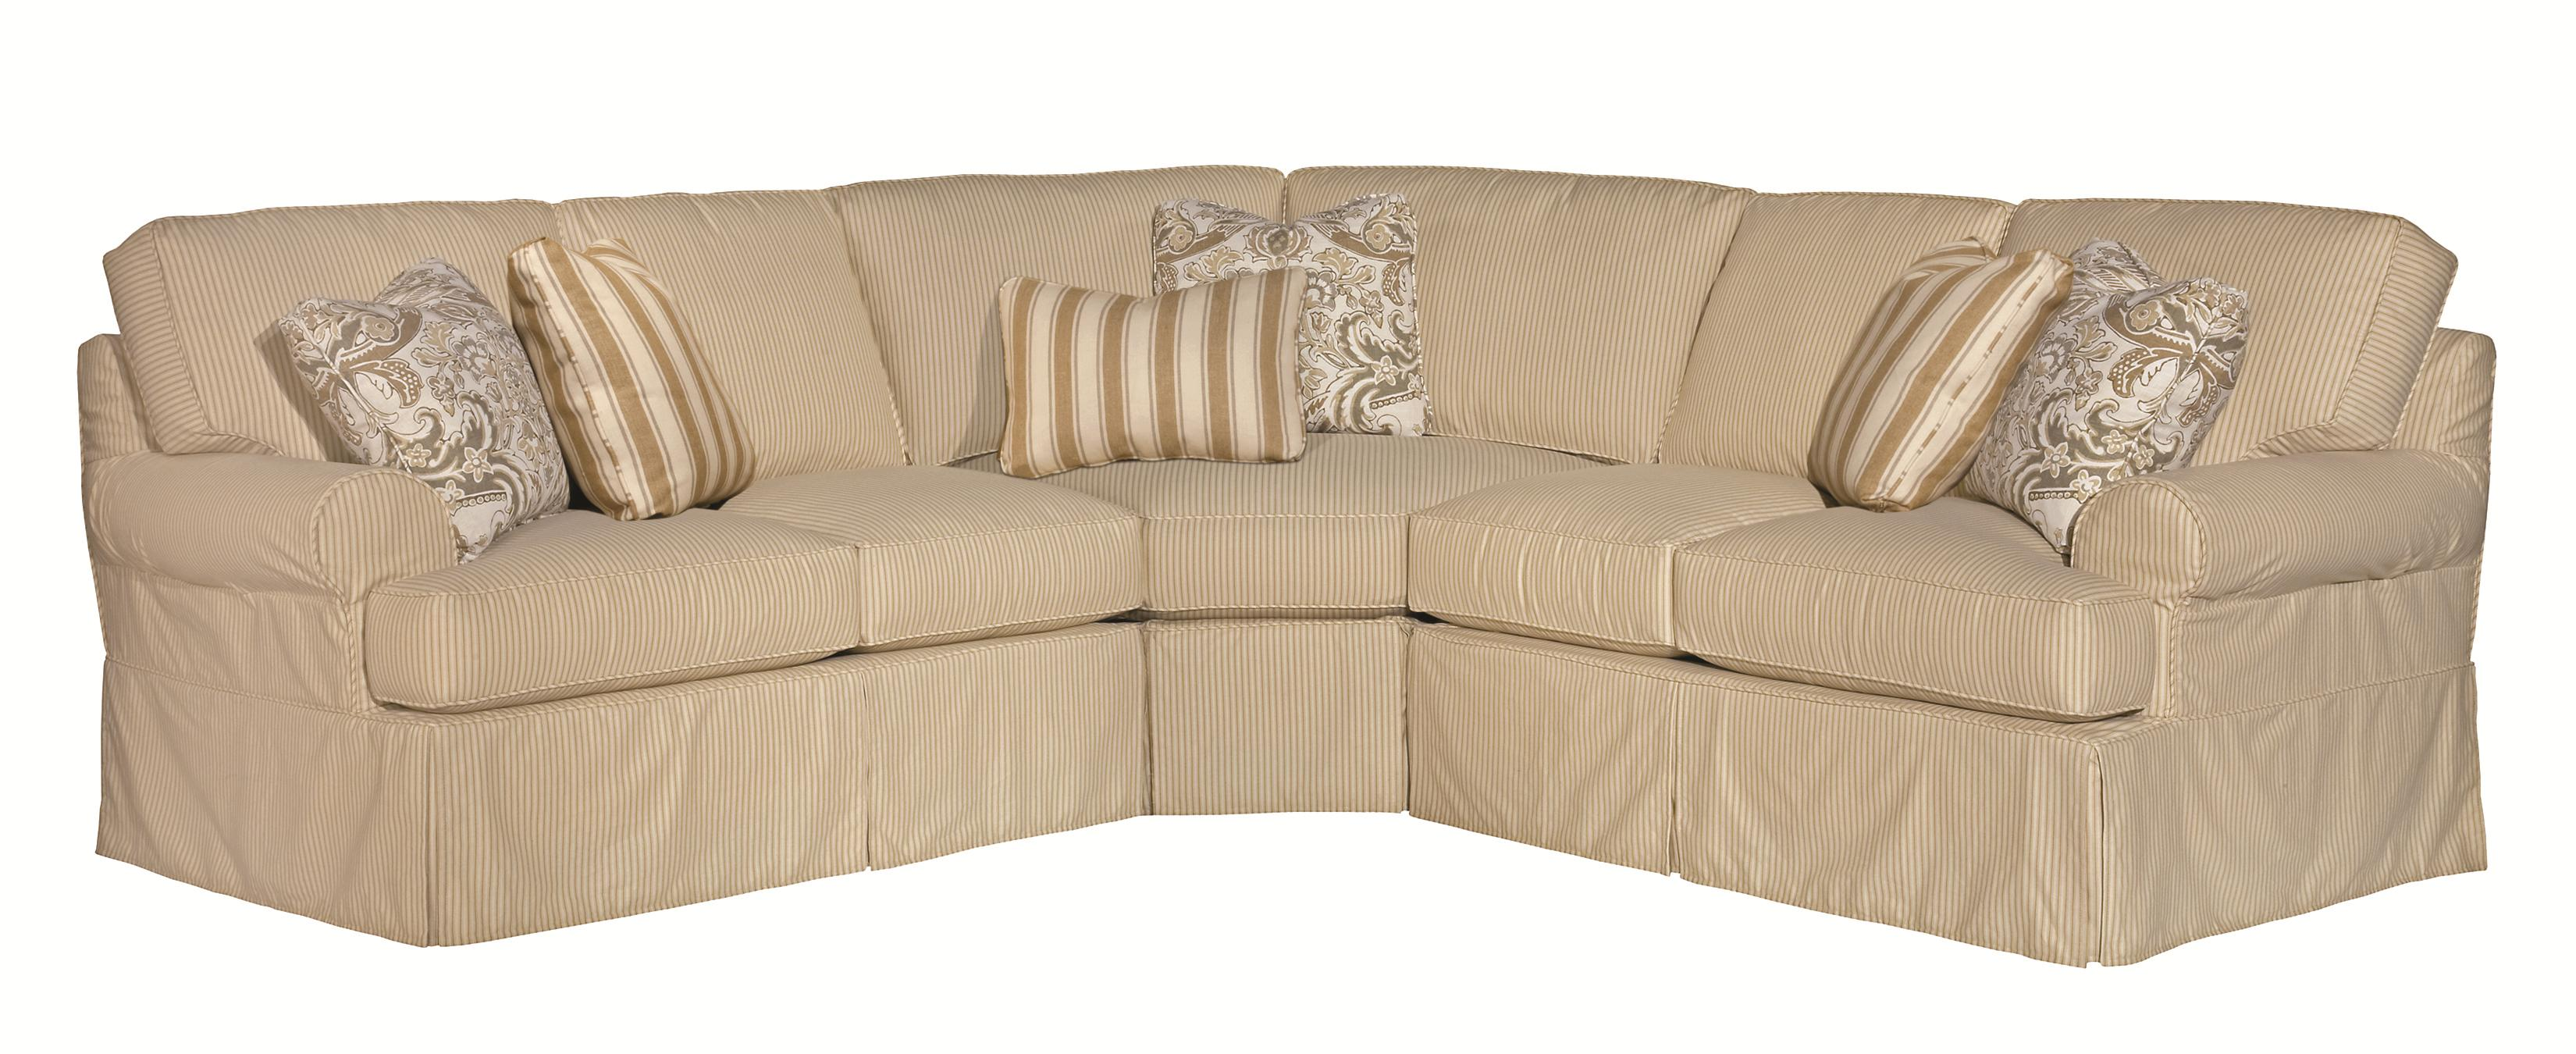 attachment sofas slipcover cool of design sectional cover beautiful and epic for in sofa navy slipcovers couch